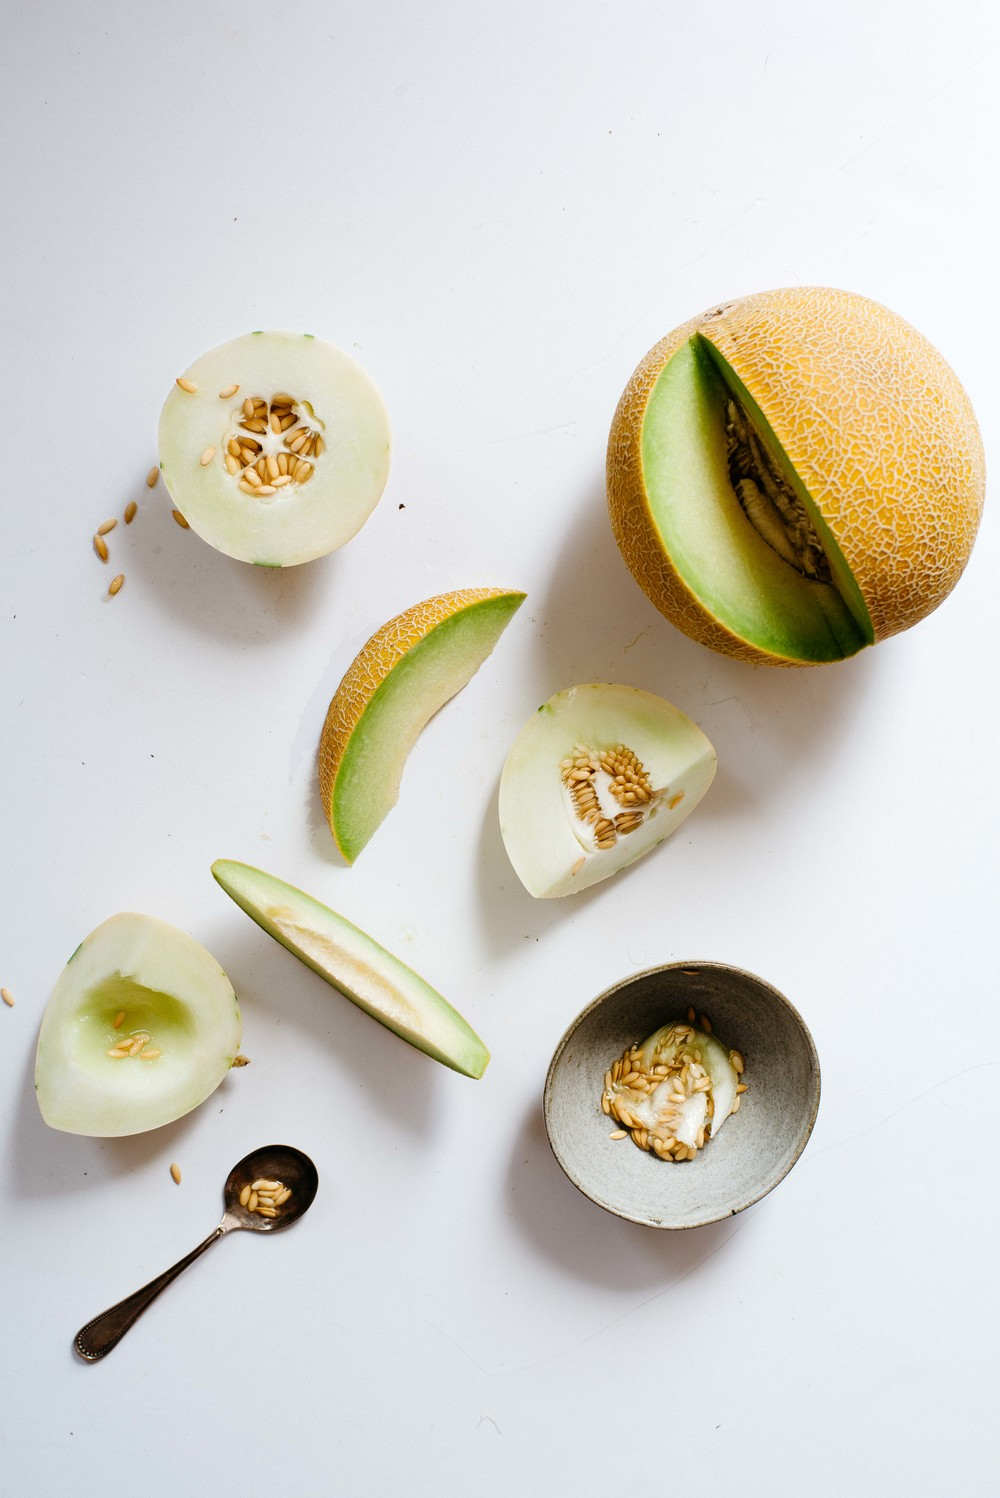 green cantaloupe + snow leopard melon | dolly and oatmeal